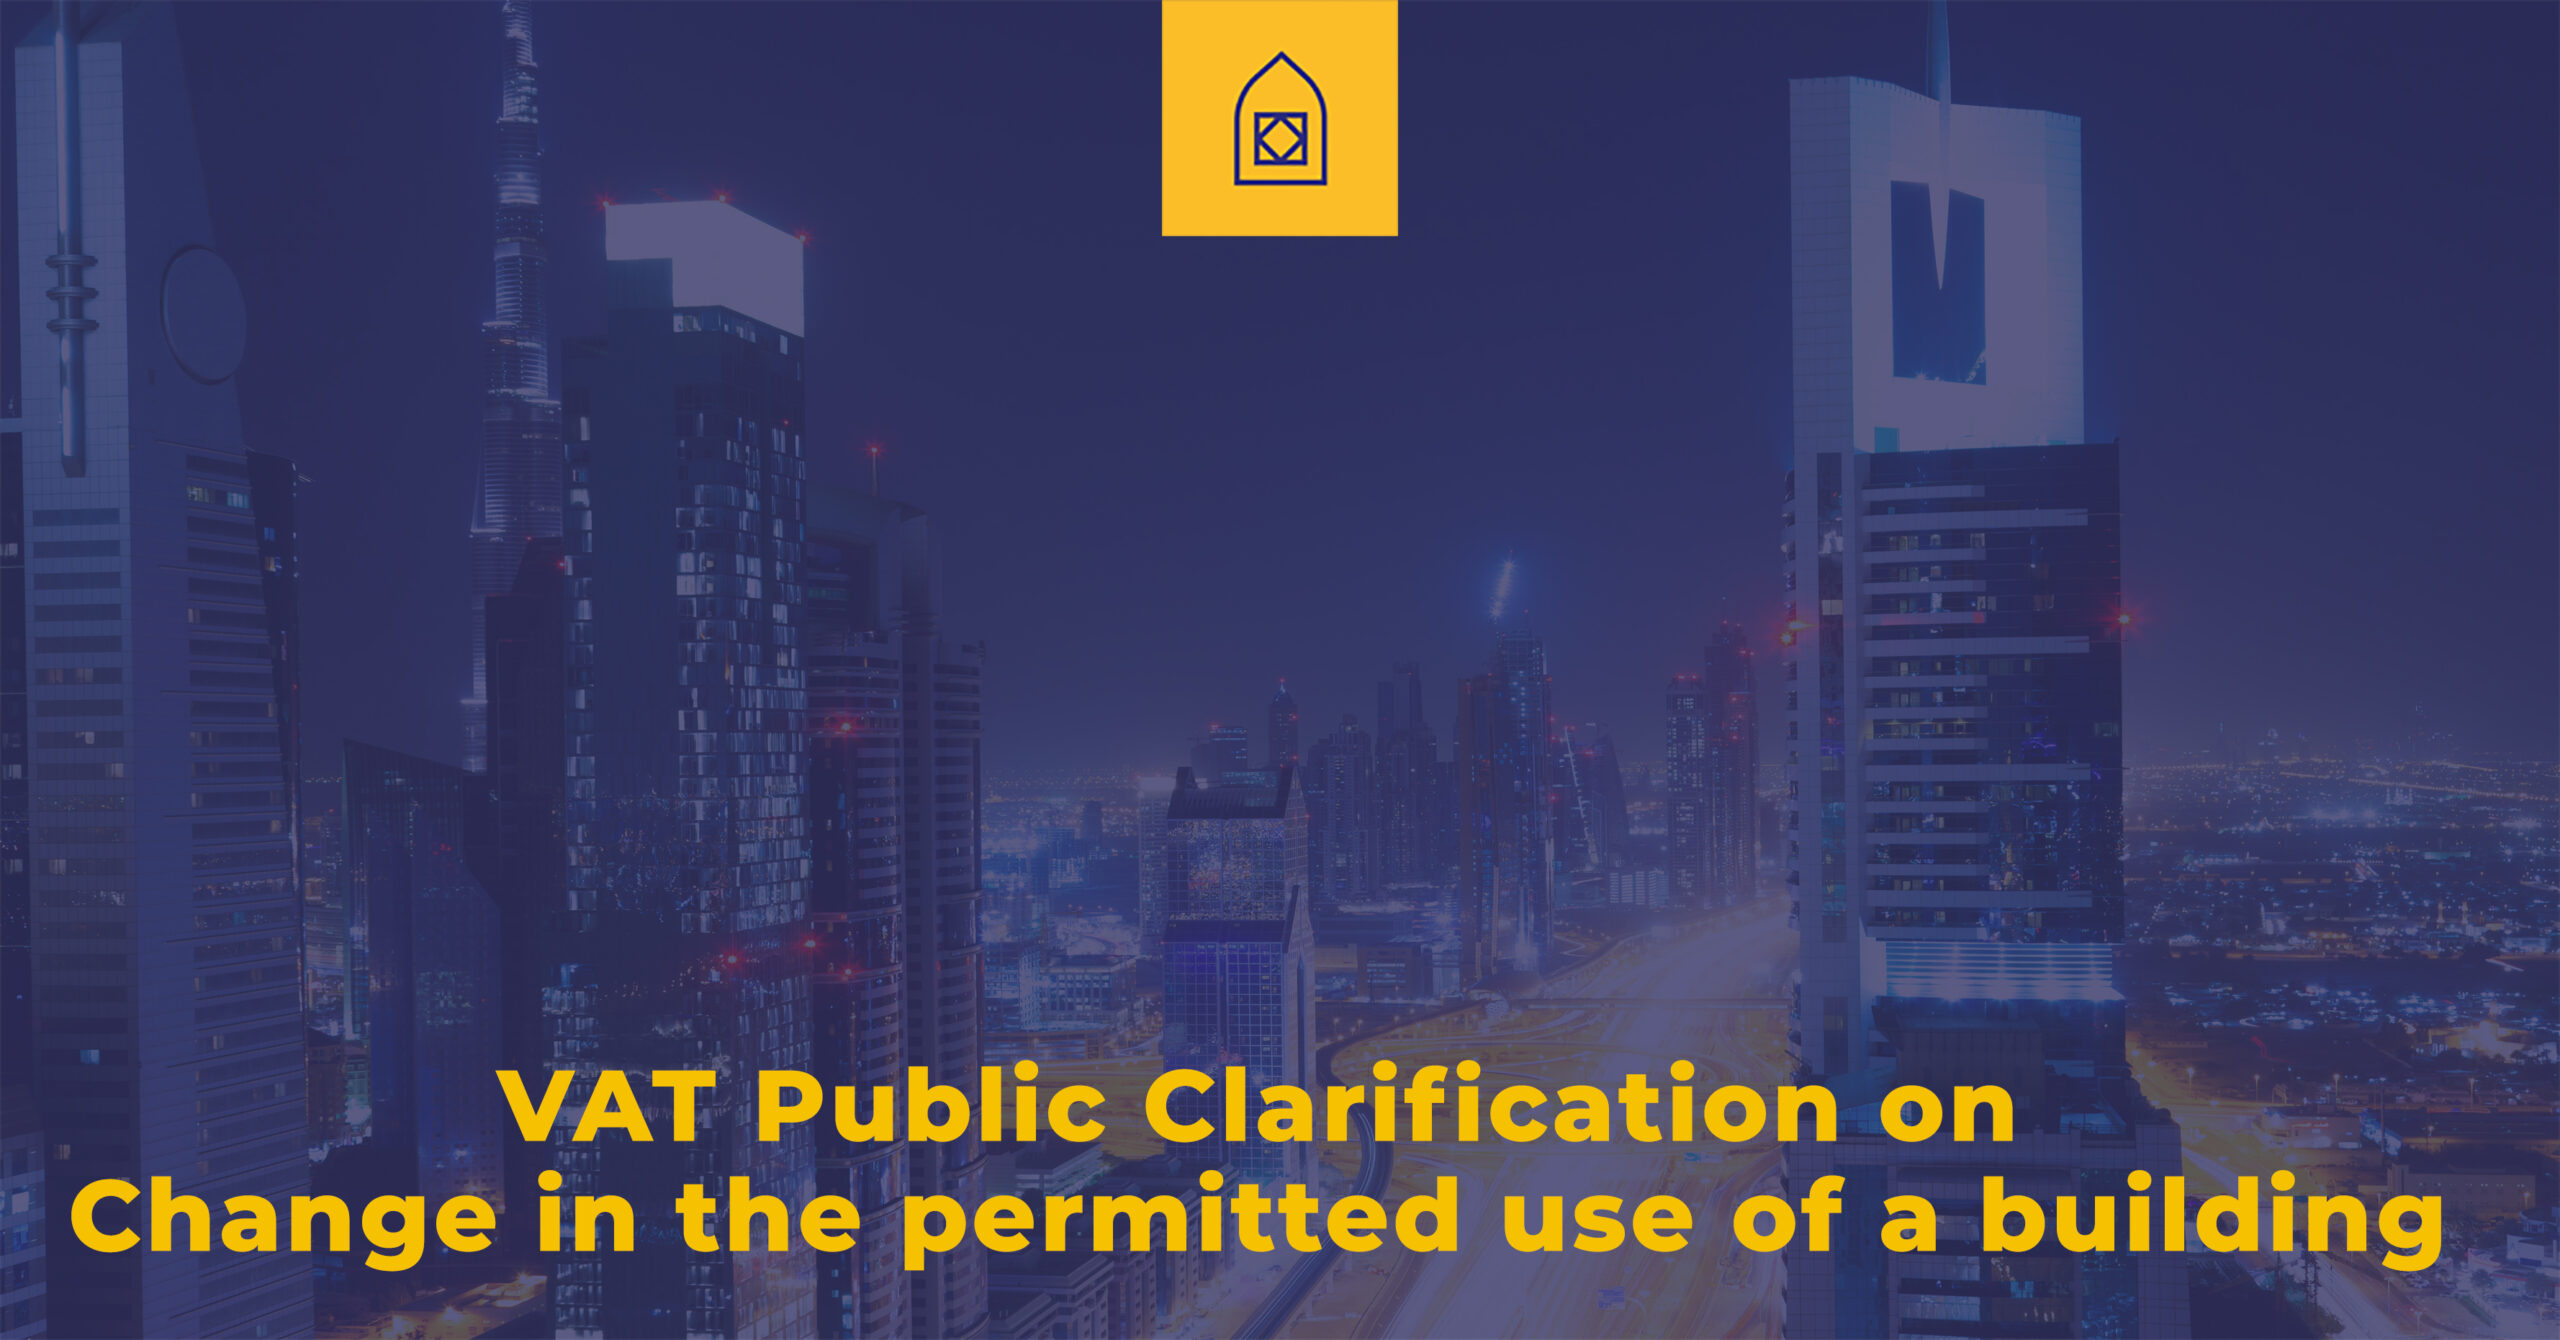 VAT public clarification on Change in the permitted use of a building